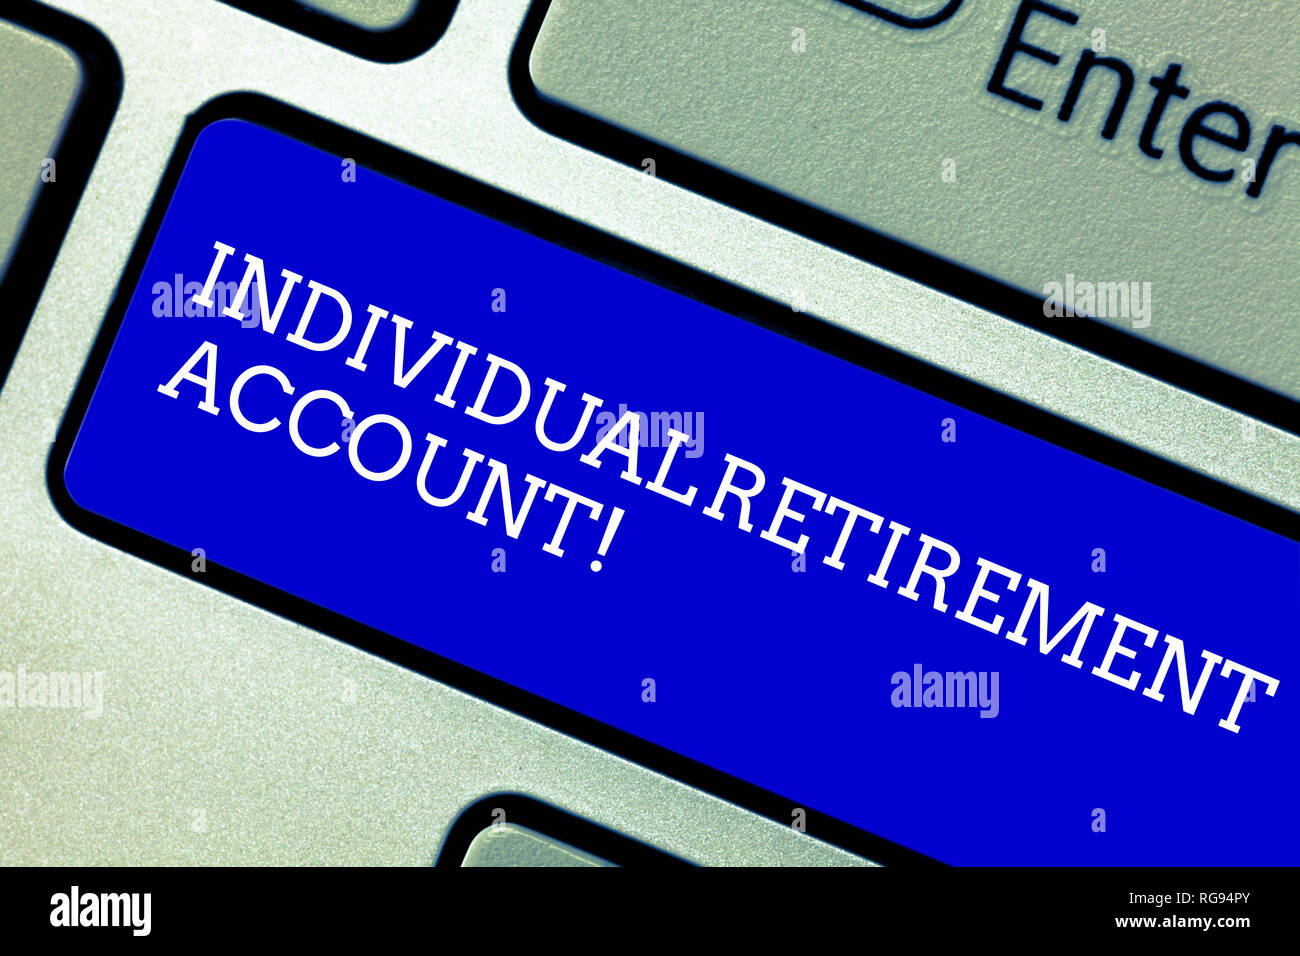 Word writing text Individual Retirement Account. Business concept for Invest and earmark funds for retirement Keyboard key Intention to create compute - Stock Image